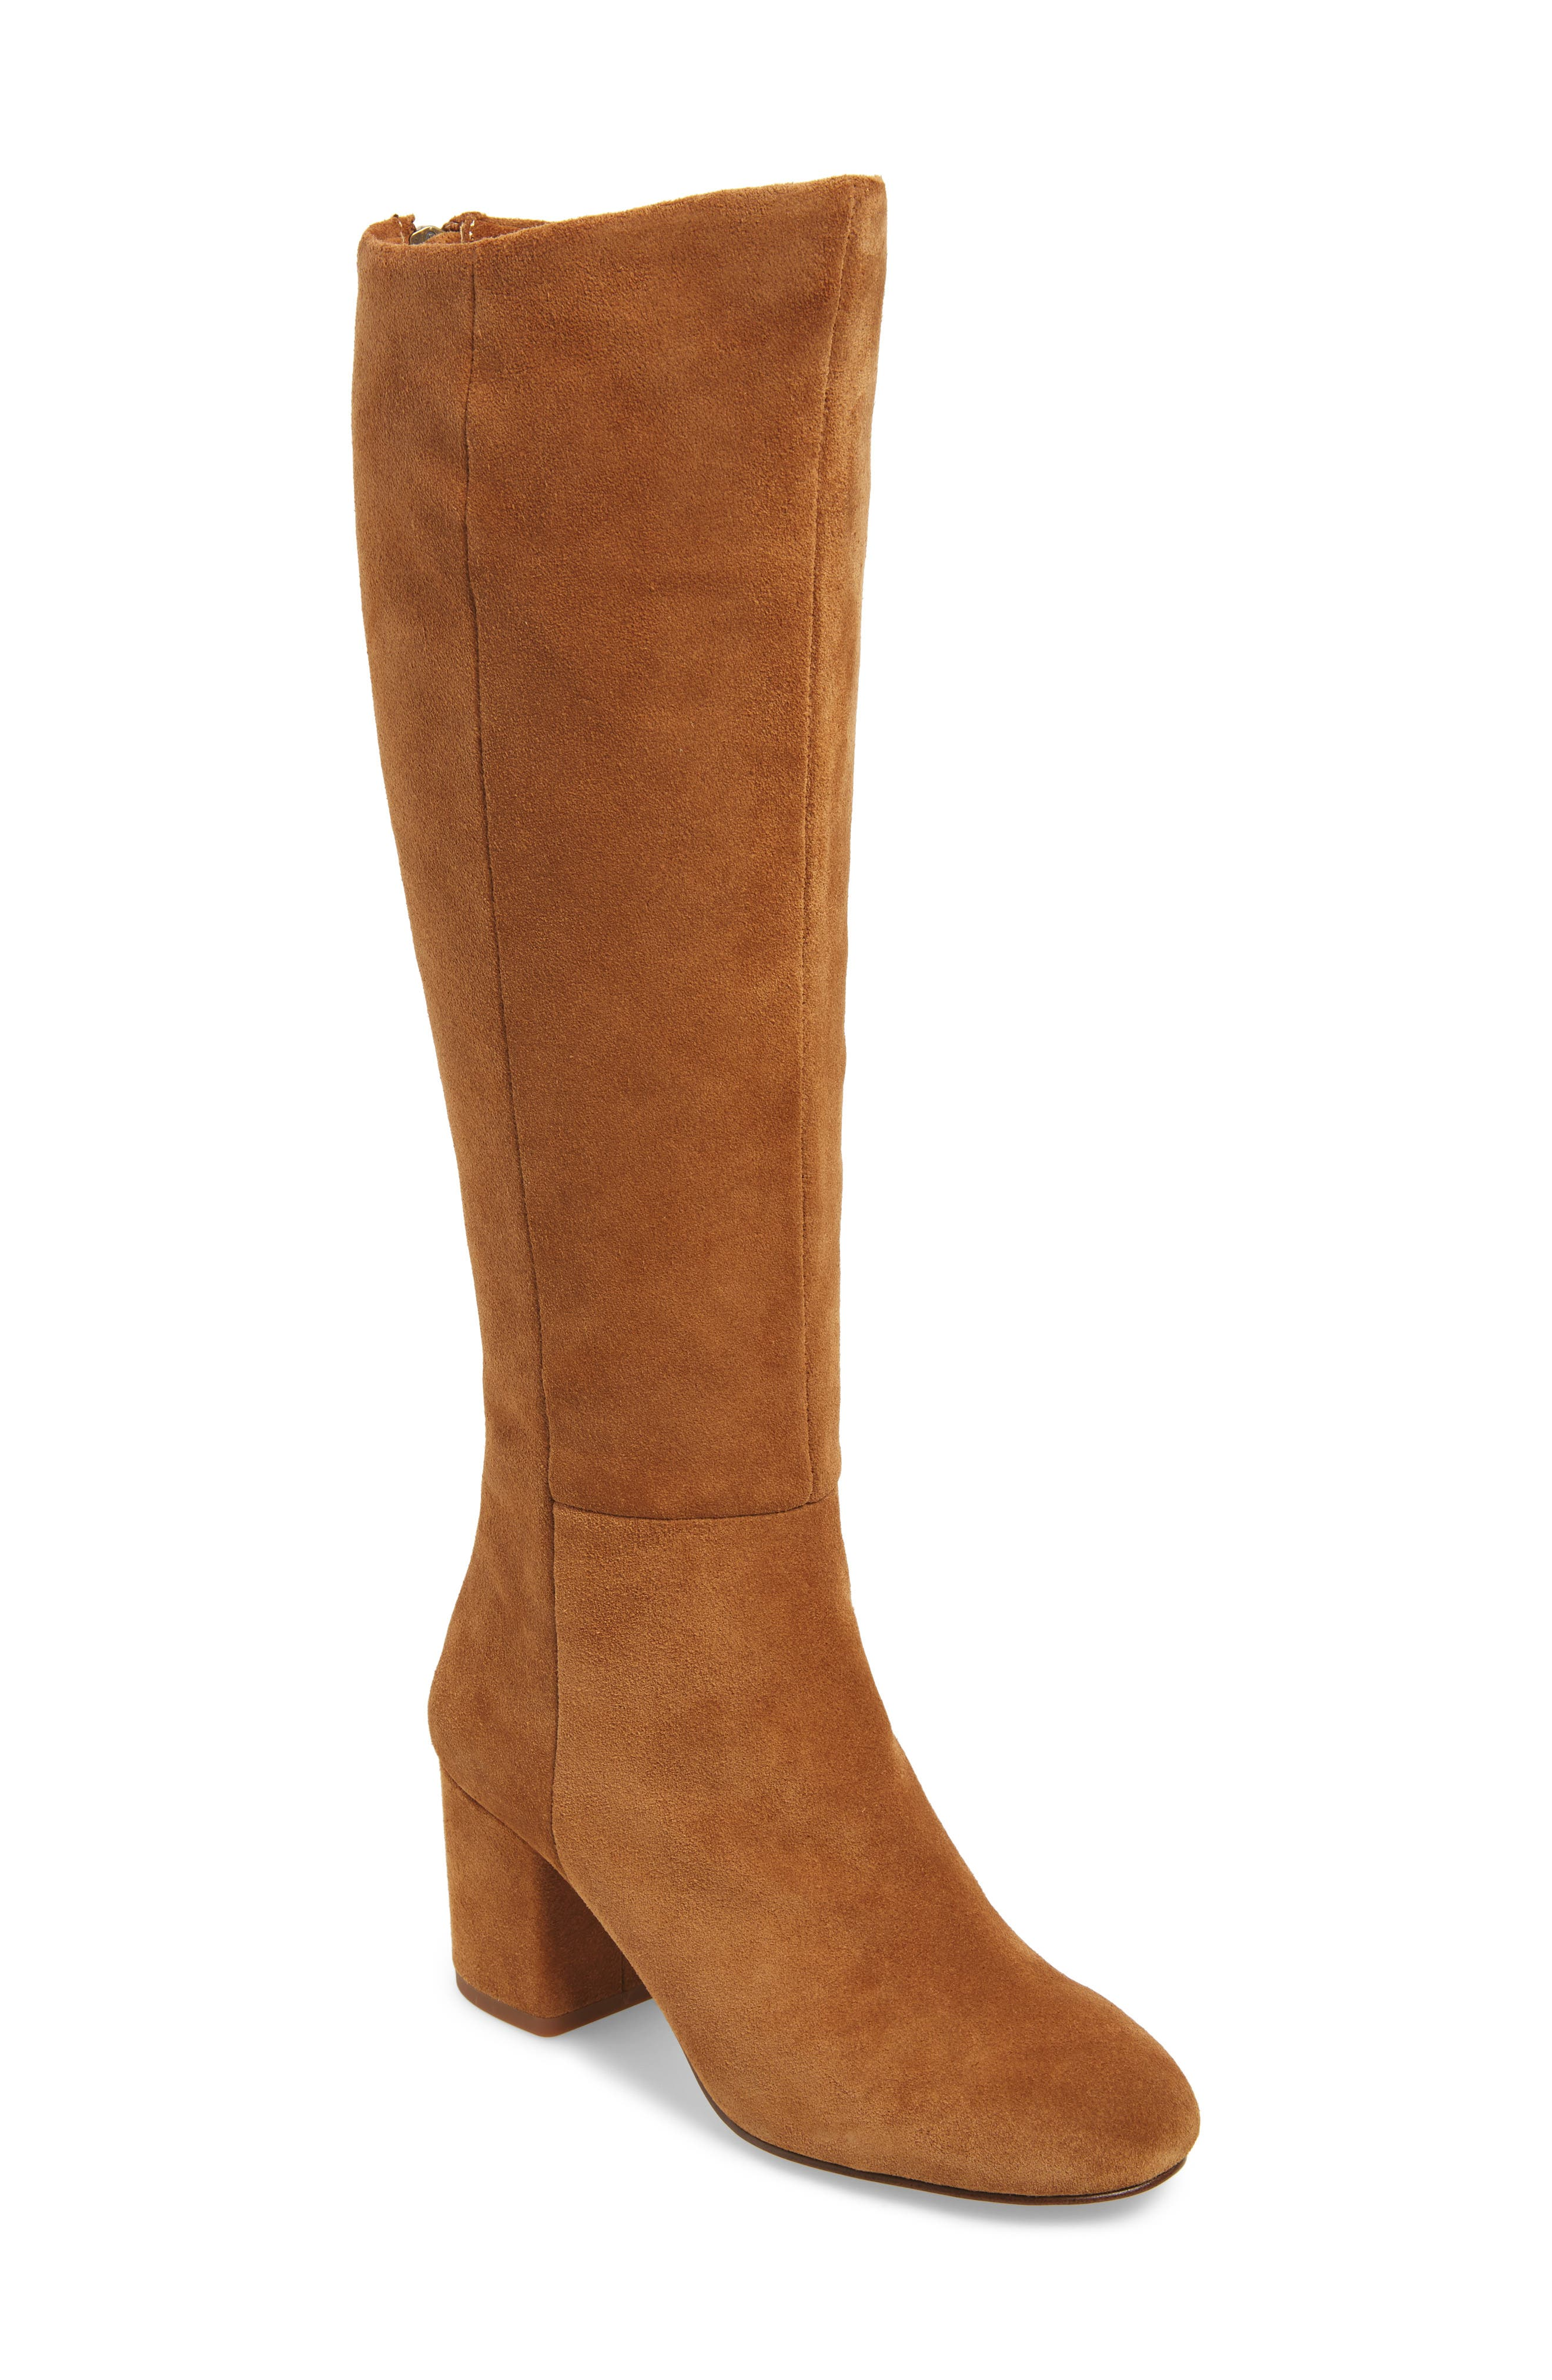 Danise Knee High Boot,                             Main thumbnail 1, color,                             Chestnut Suede